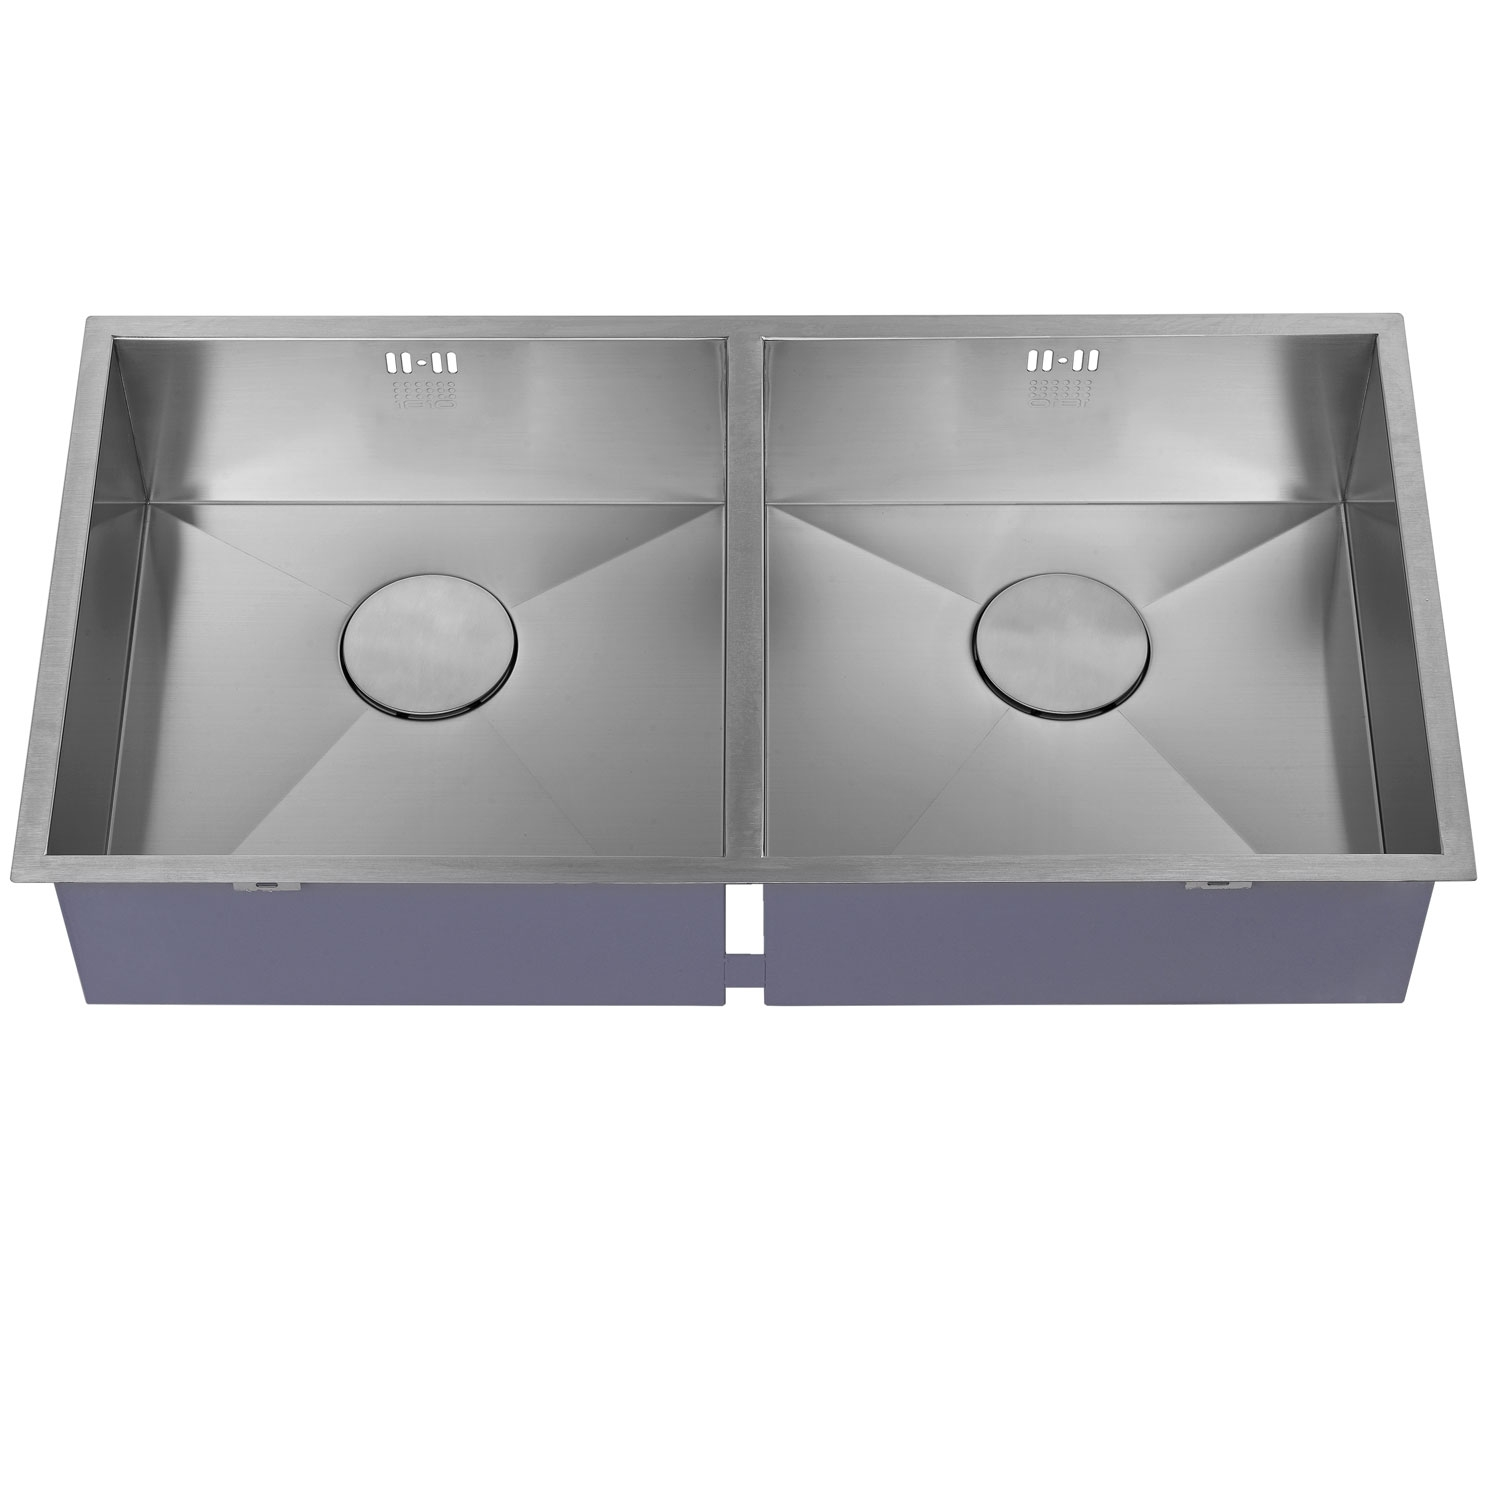 The 1810 Company Zenduo 400/400U 2.0 Bowl Kitchen Sink - Stainless Steel